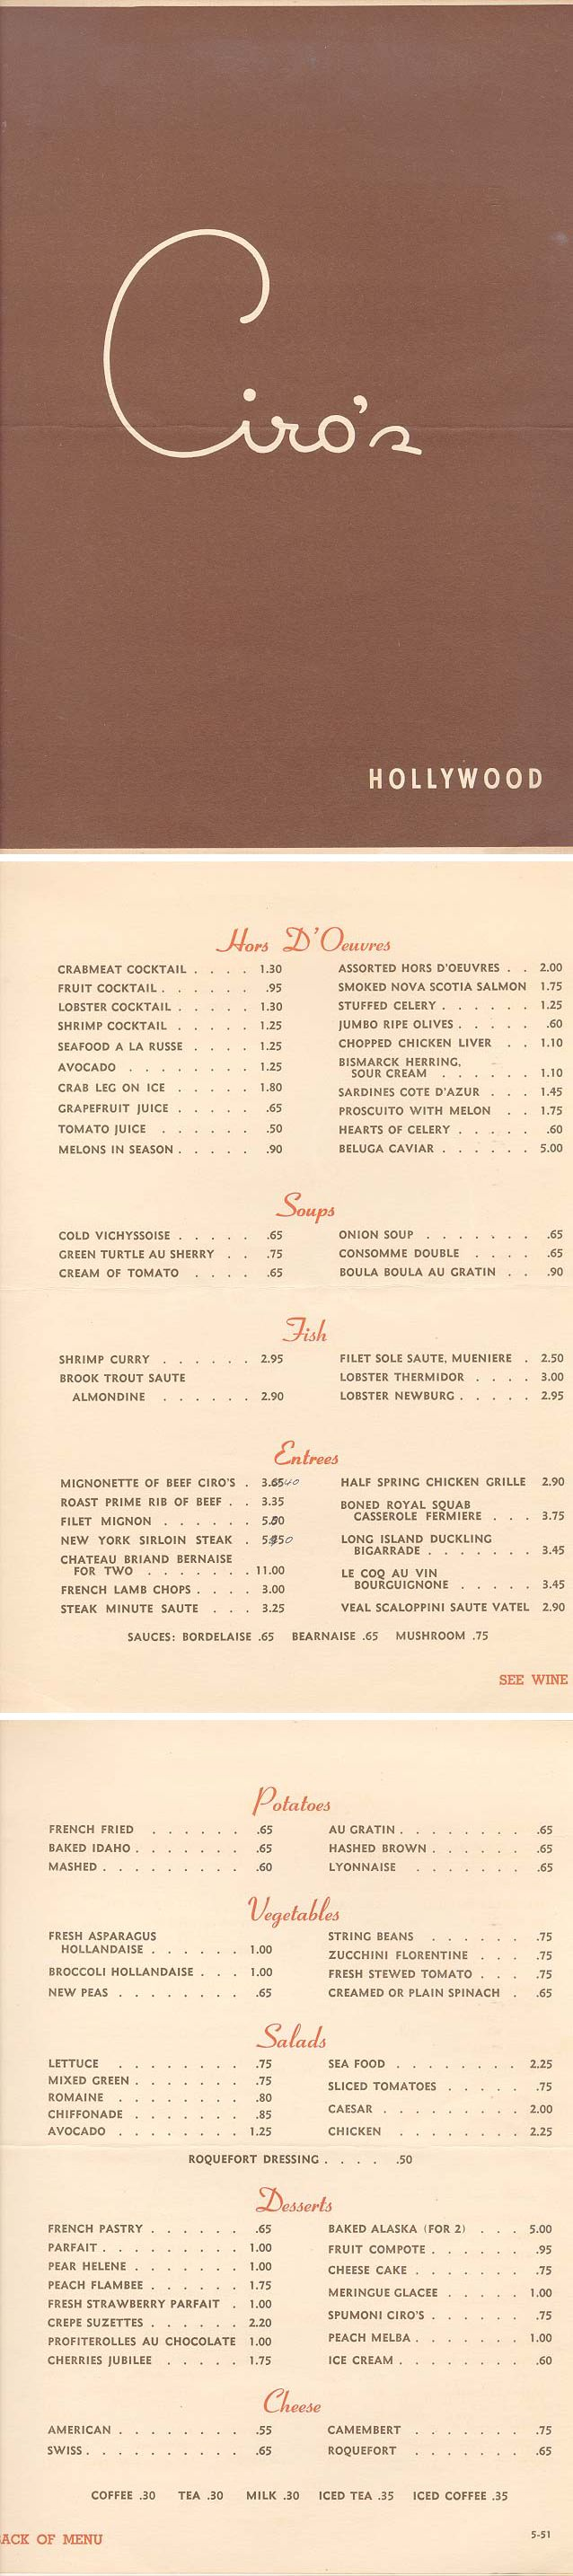 """Ciro's Menu — Ciro's was a nightclub in West Hollywood, California, at 8433 Sunset Boulevard, on the Sunset Strip. It opened in January 1940 and closed its doors in 1957. Ciro's combined an overdone baroque interior and an unadorned exterior and became a famous hangout for movie people. It was one of """"the"""" places to be seen and guaranteed being written about in the gossip columns of Hedda Hopper and Louella Parsons. In the 60s it became a rock & roll club."""